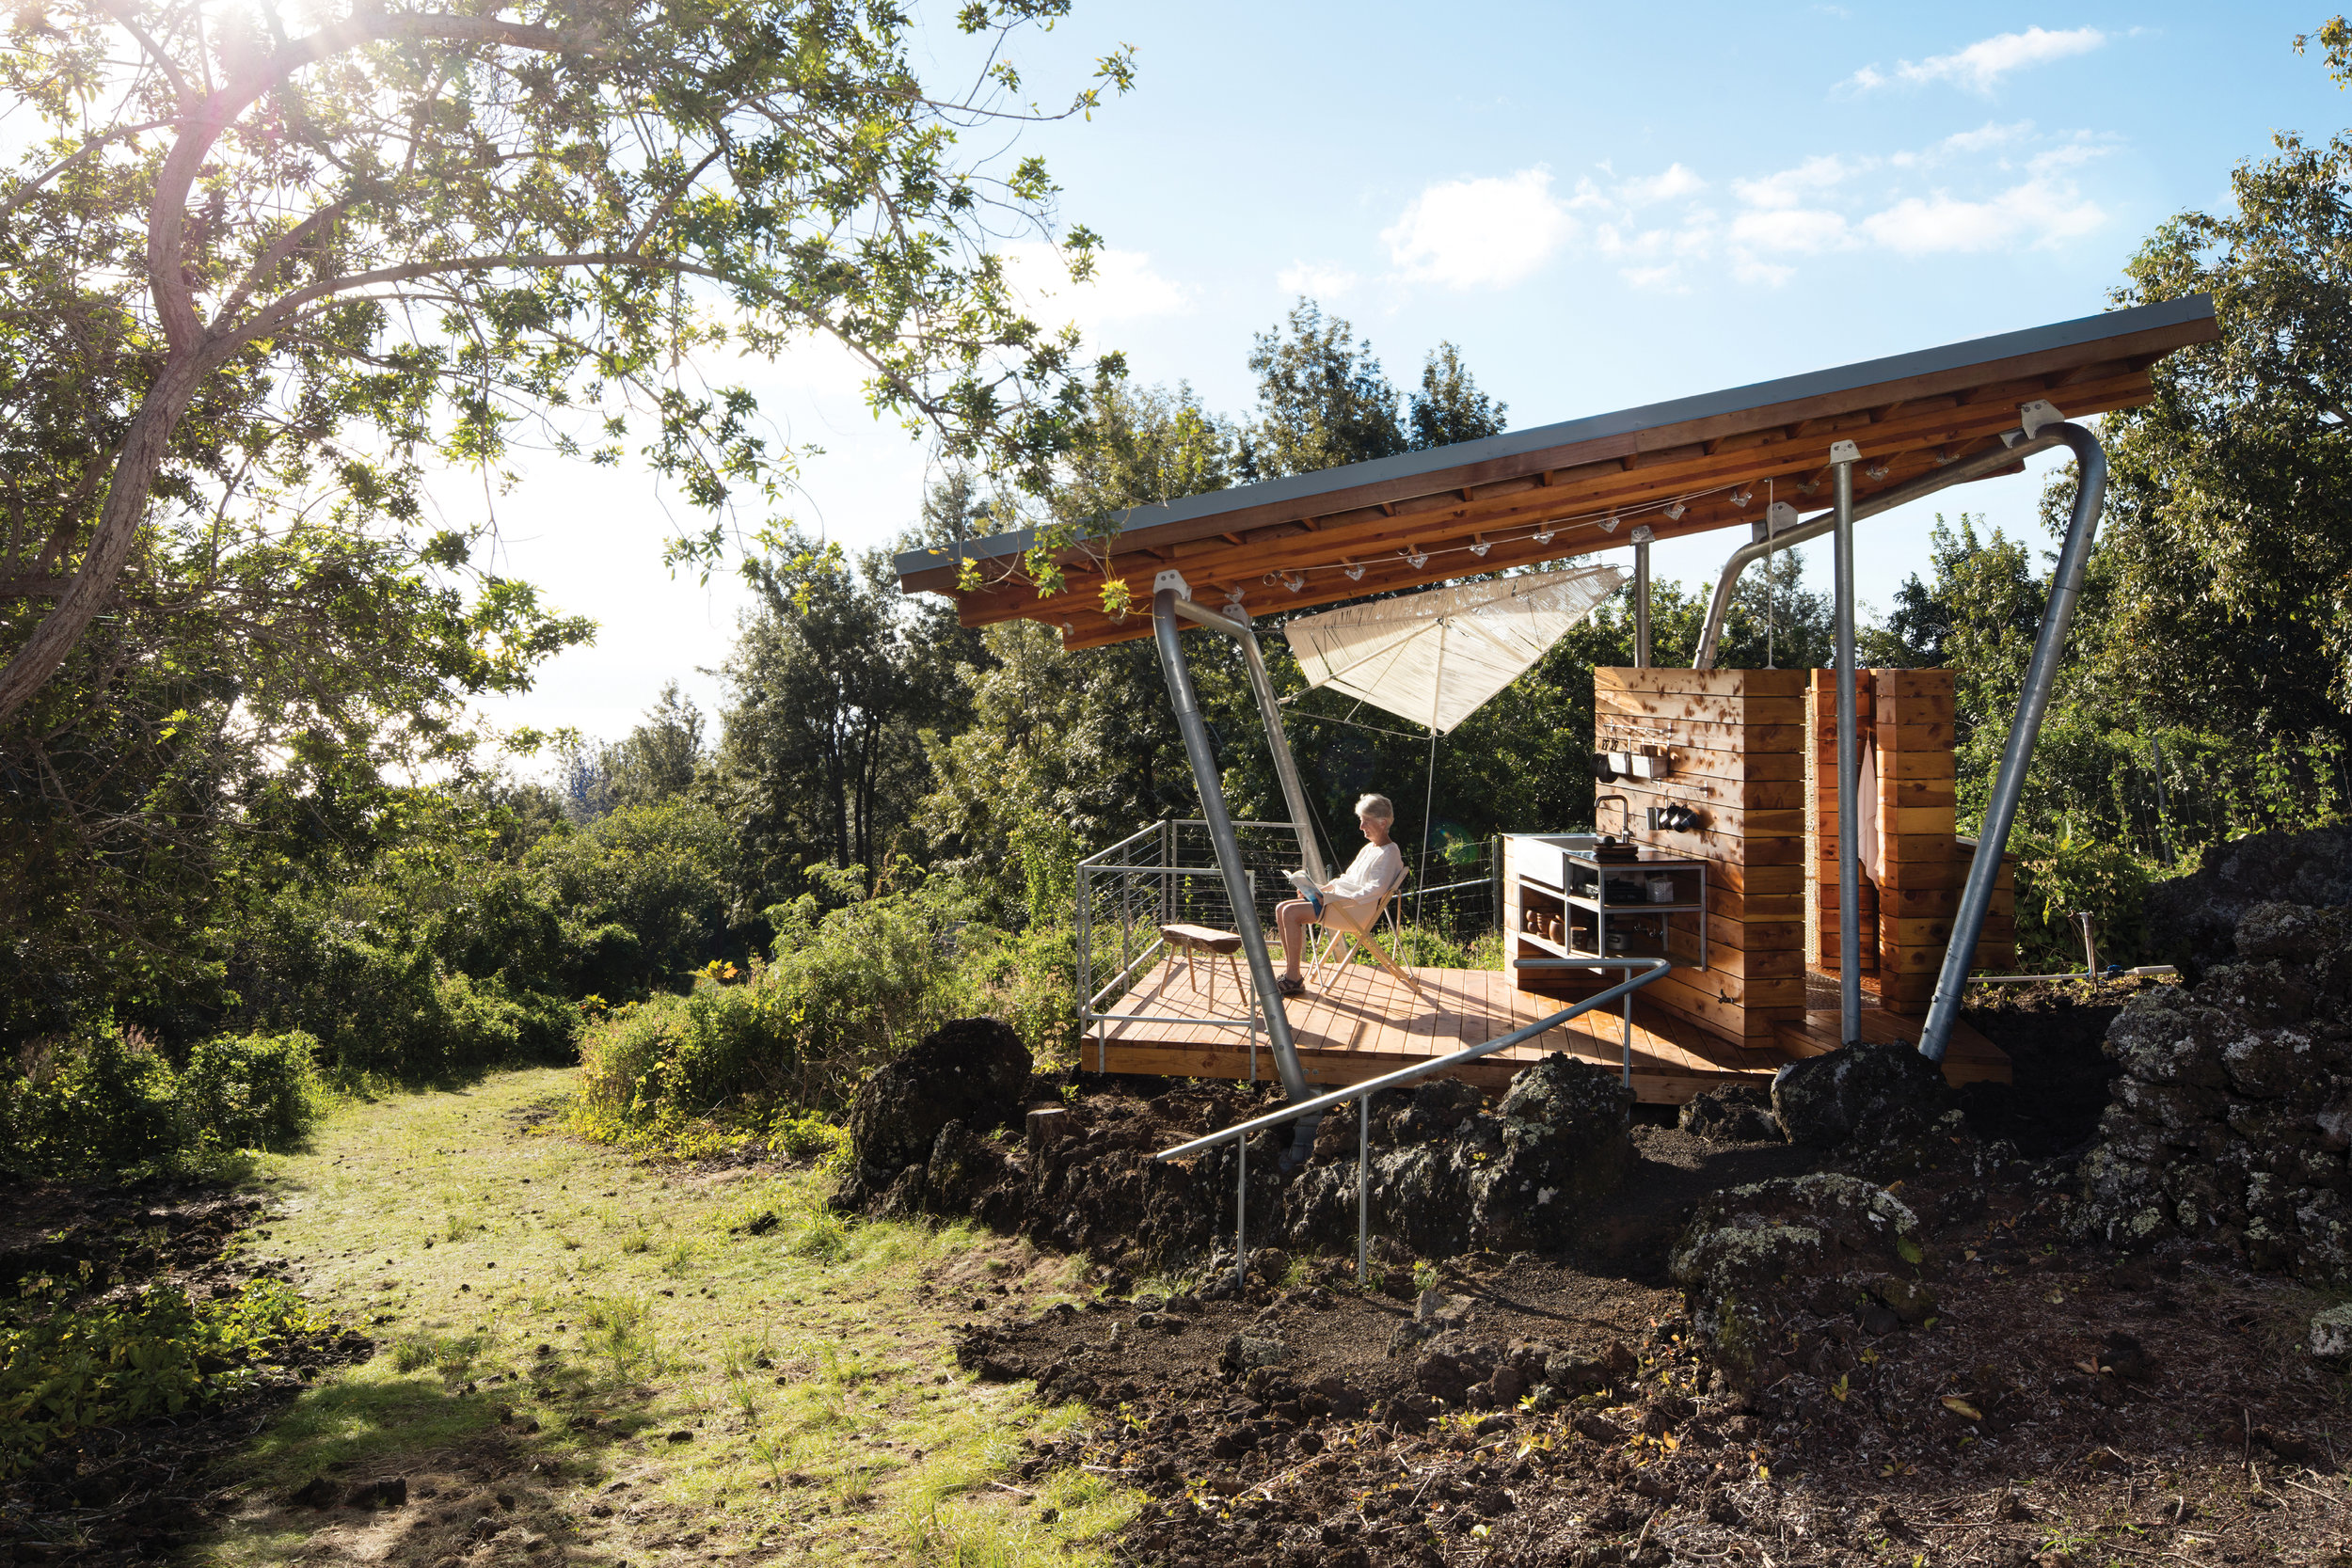 FIRST PLACE: 'Outside House' by Erin Moore / FLOAT Architectural Research and Design